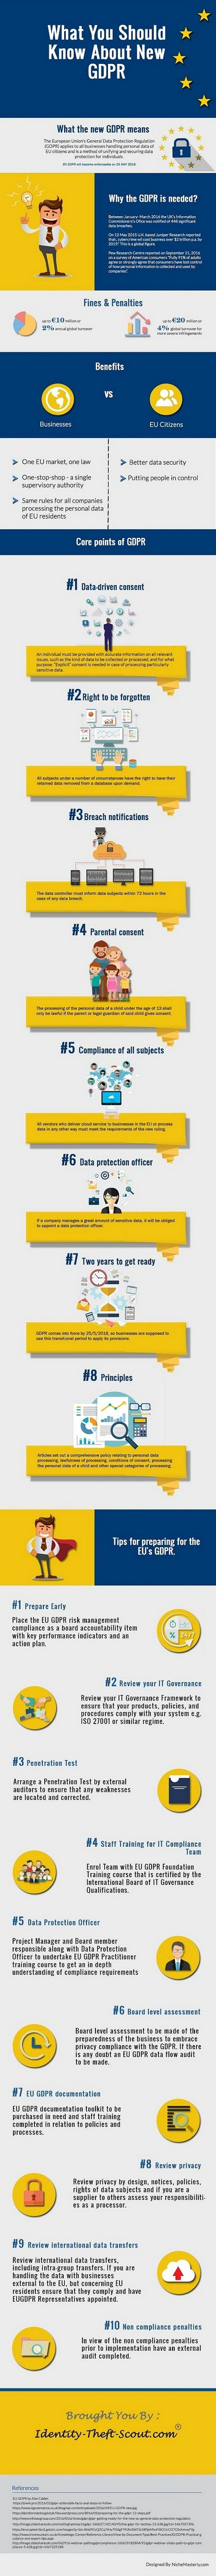 The new European Union General Data Protection Regulation (GDPR) will come into force by 25 May, 2018. This infographic has everything you need to know about the #GDPR. Available training resources: http://www.identity-theft-scout.com/eugdpr-training-resources.html  #cybersecurity #dataprotection